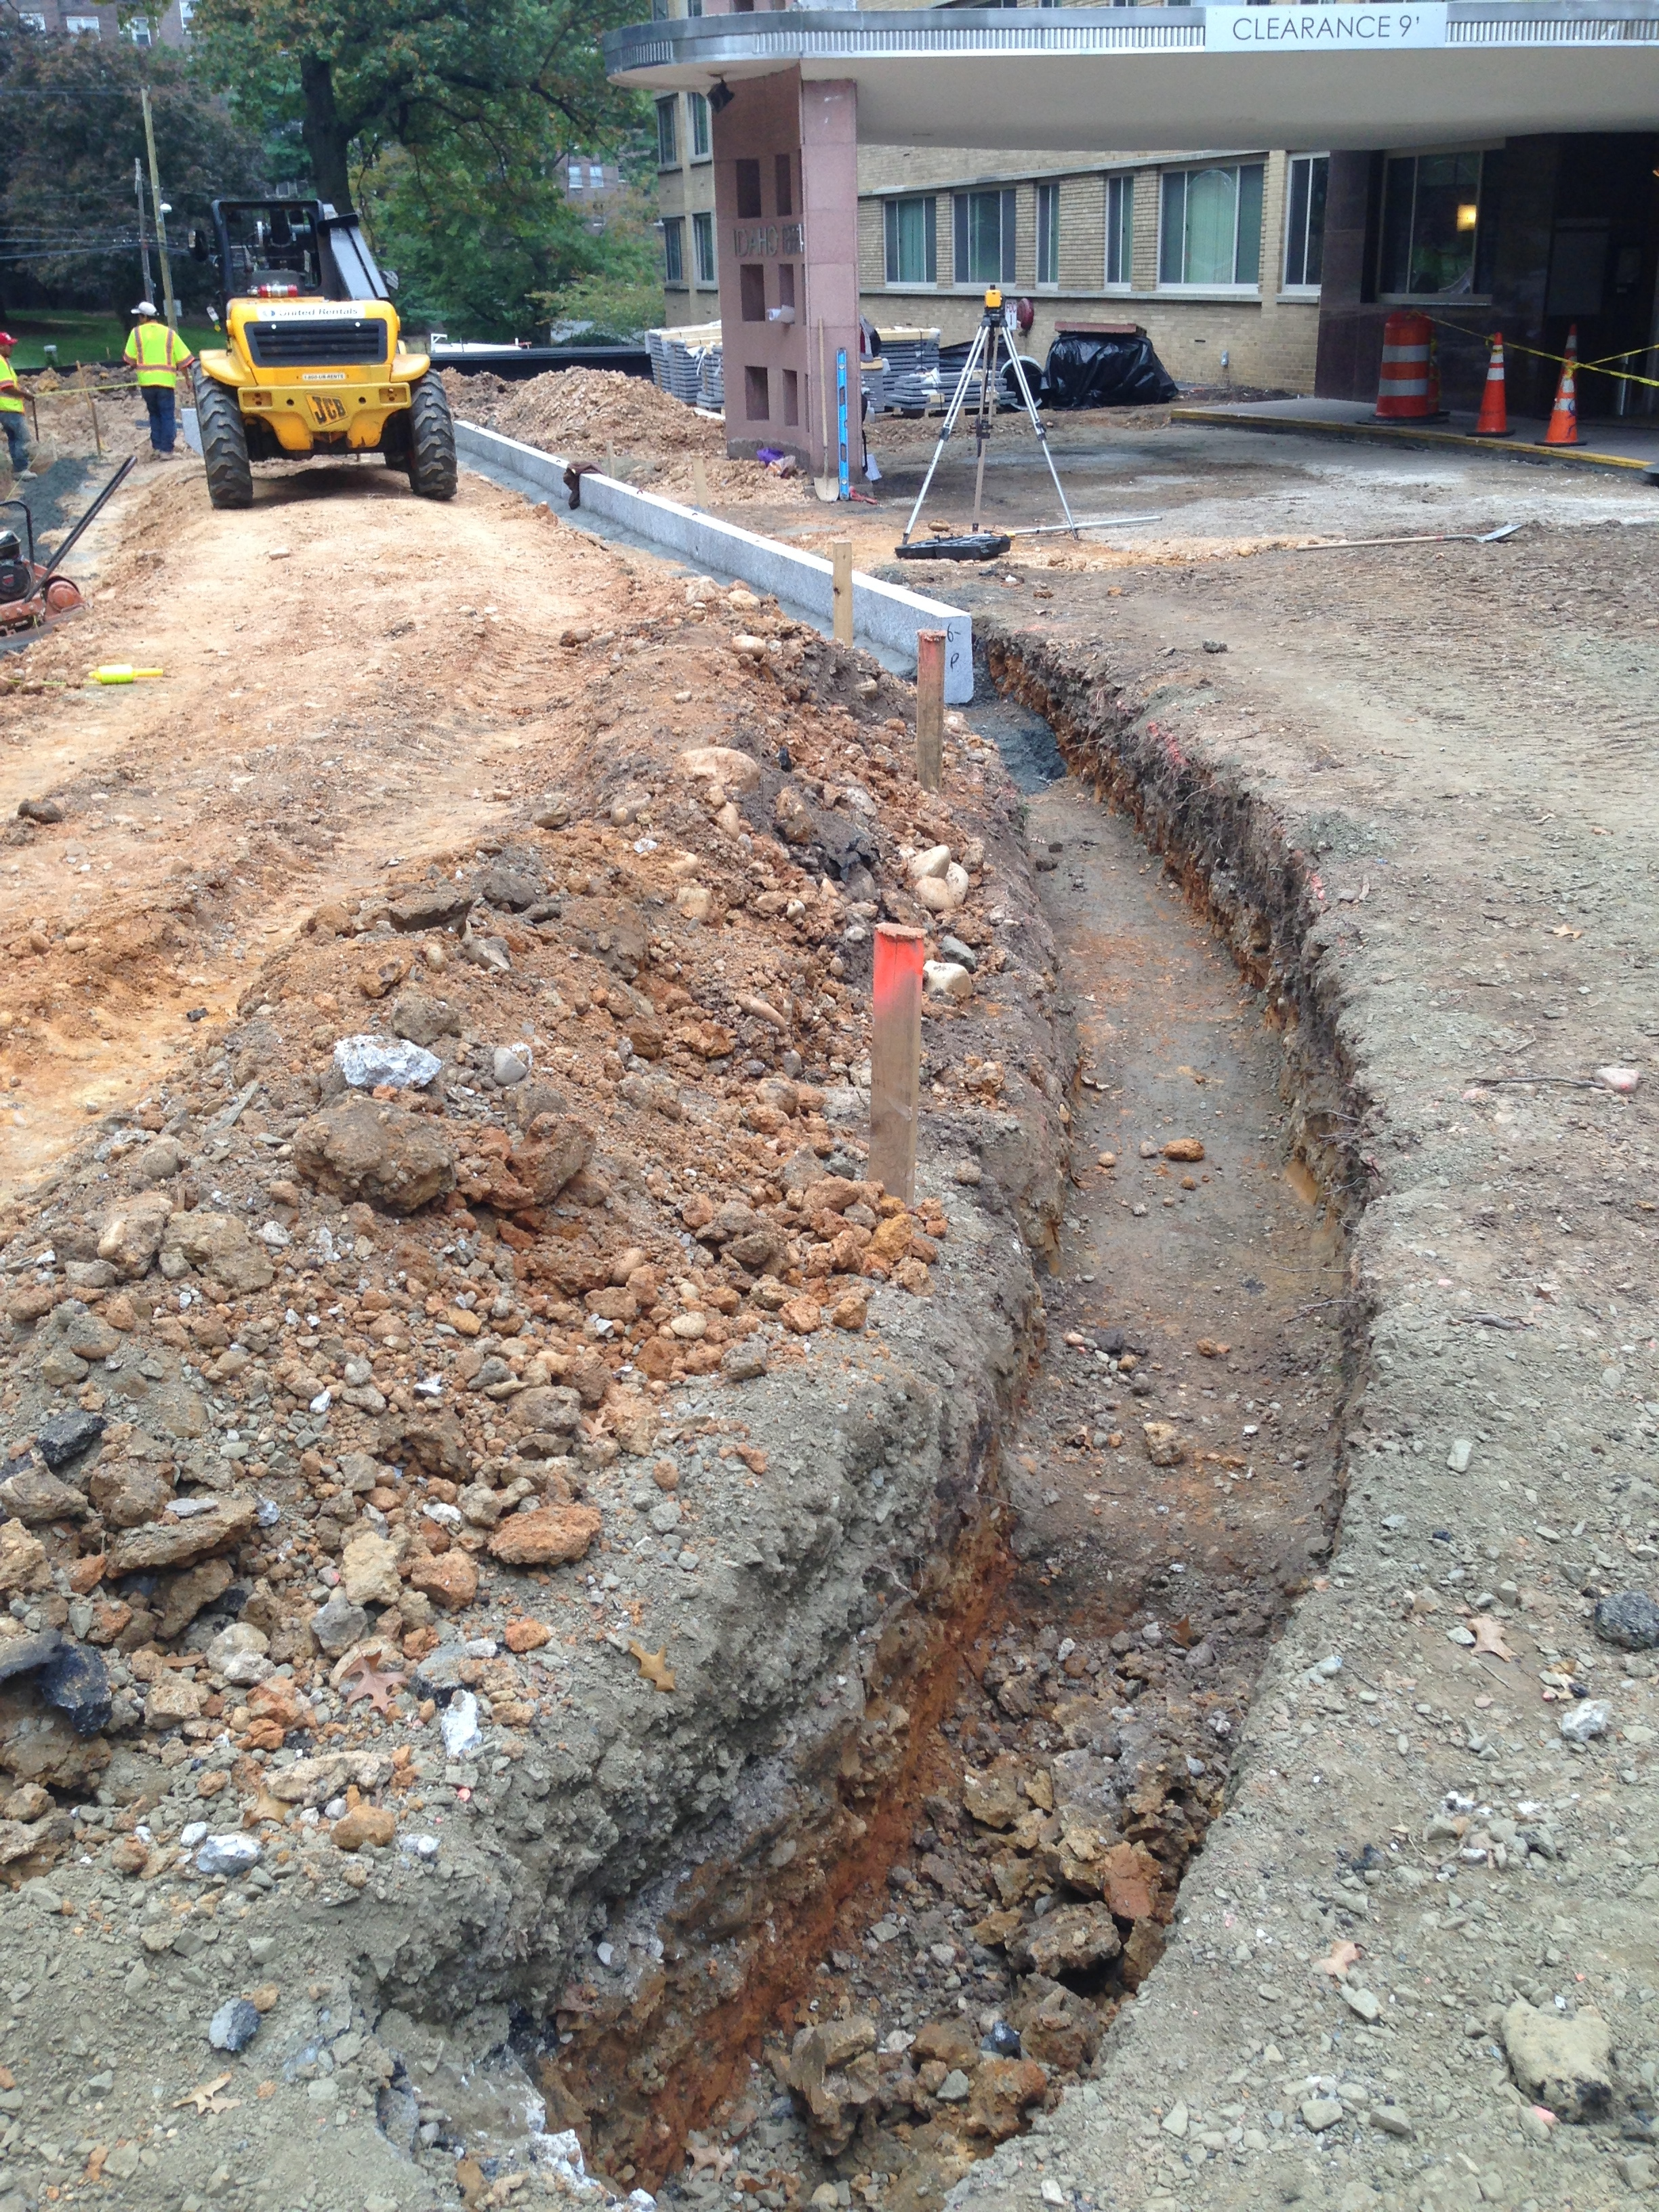 Verifying the levels and lines of the driveway and set stone.